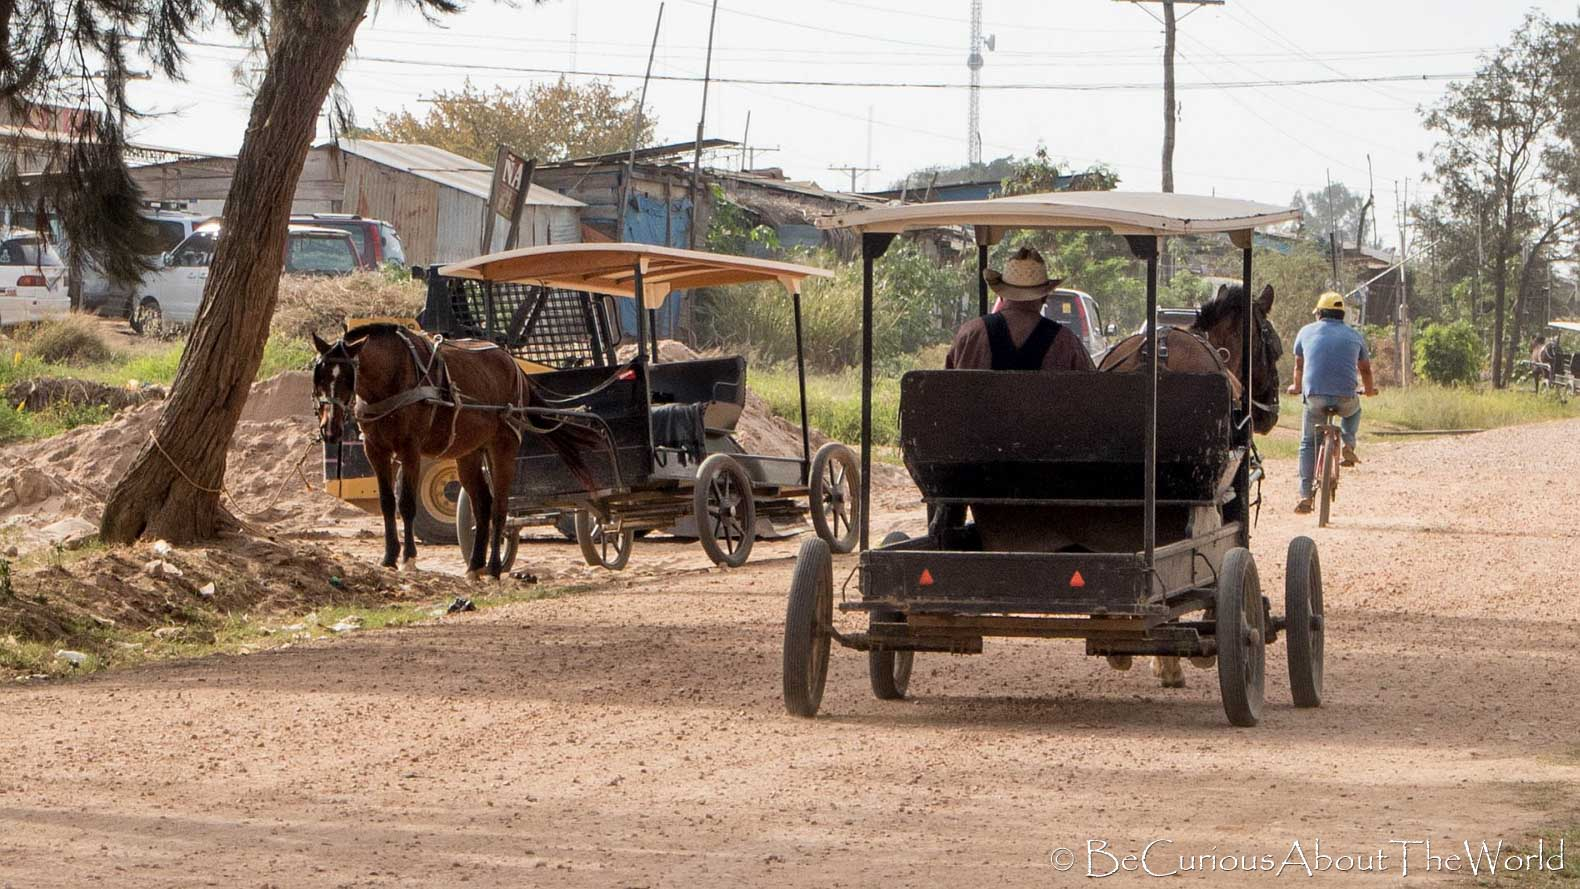 BeCuriousAboutTheWorld - Mennonites